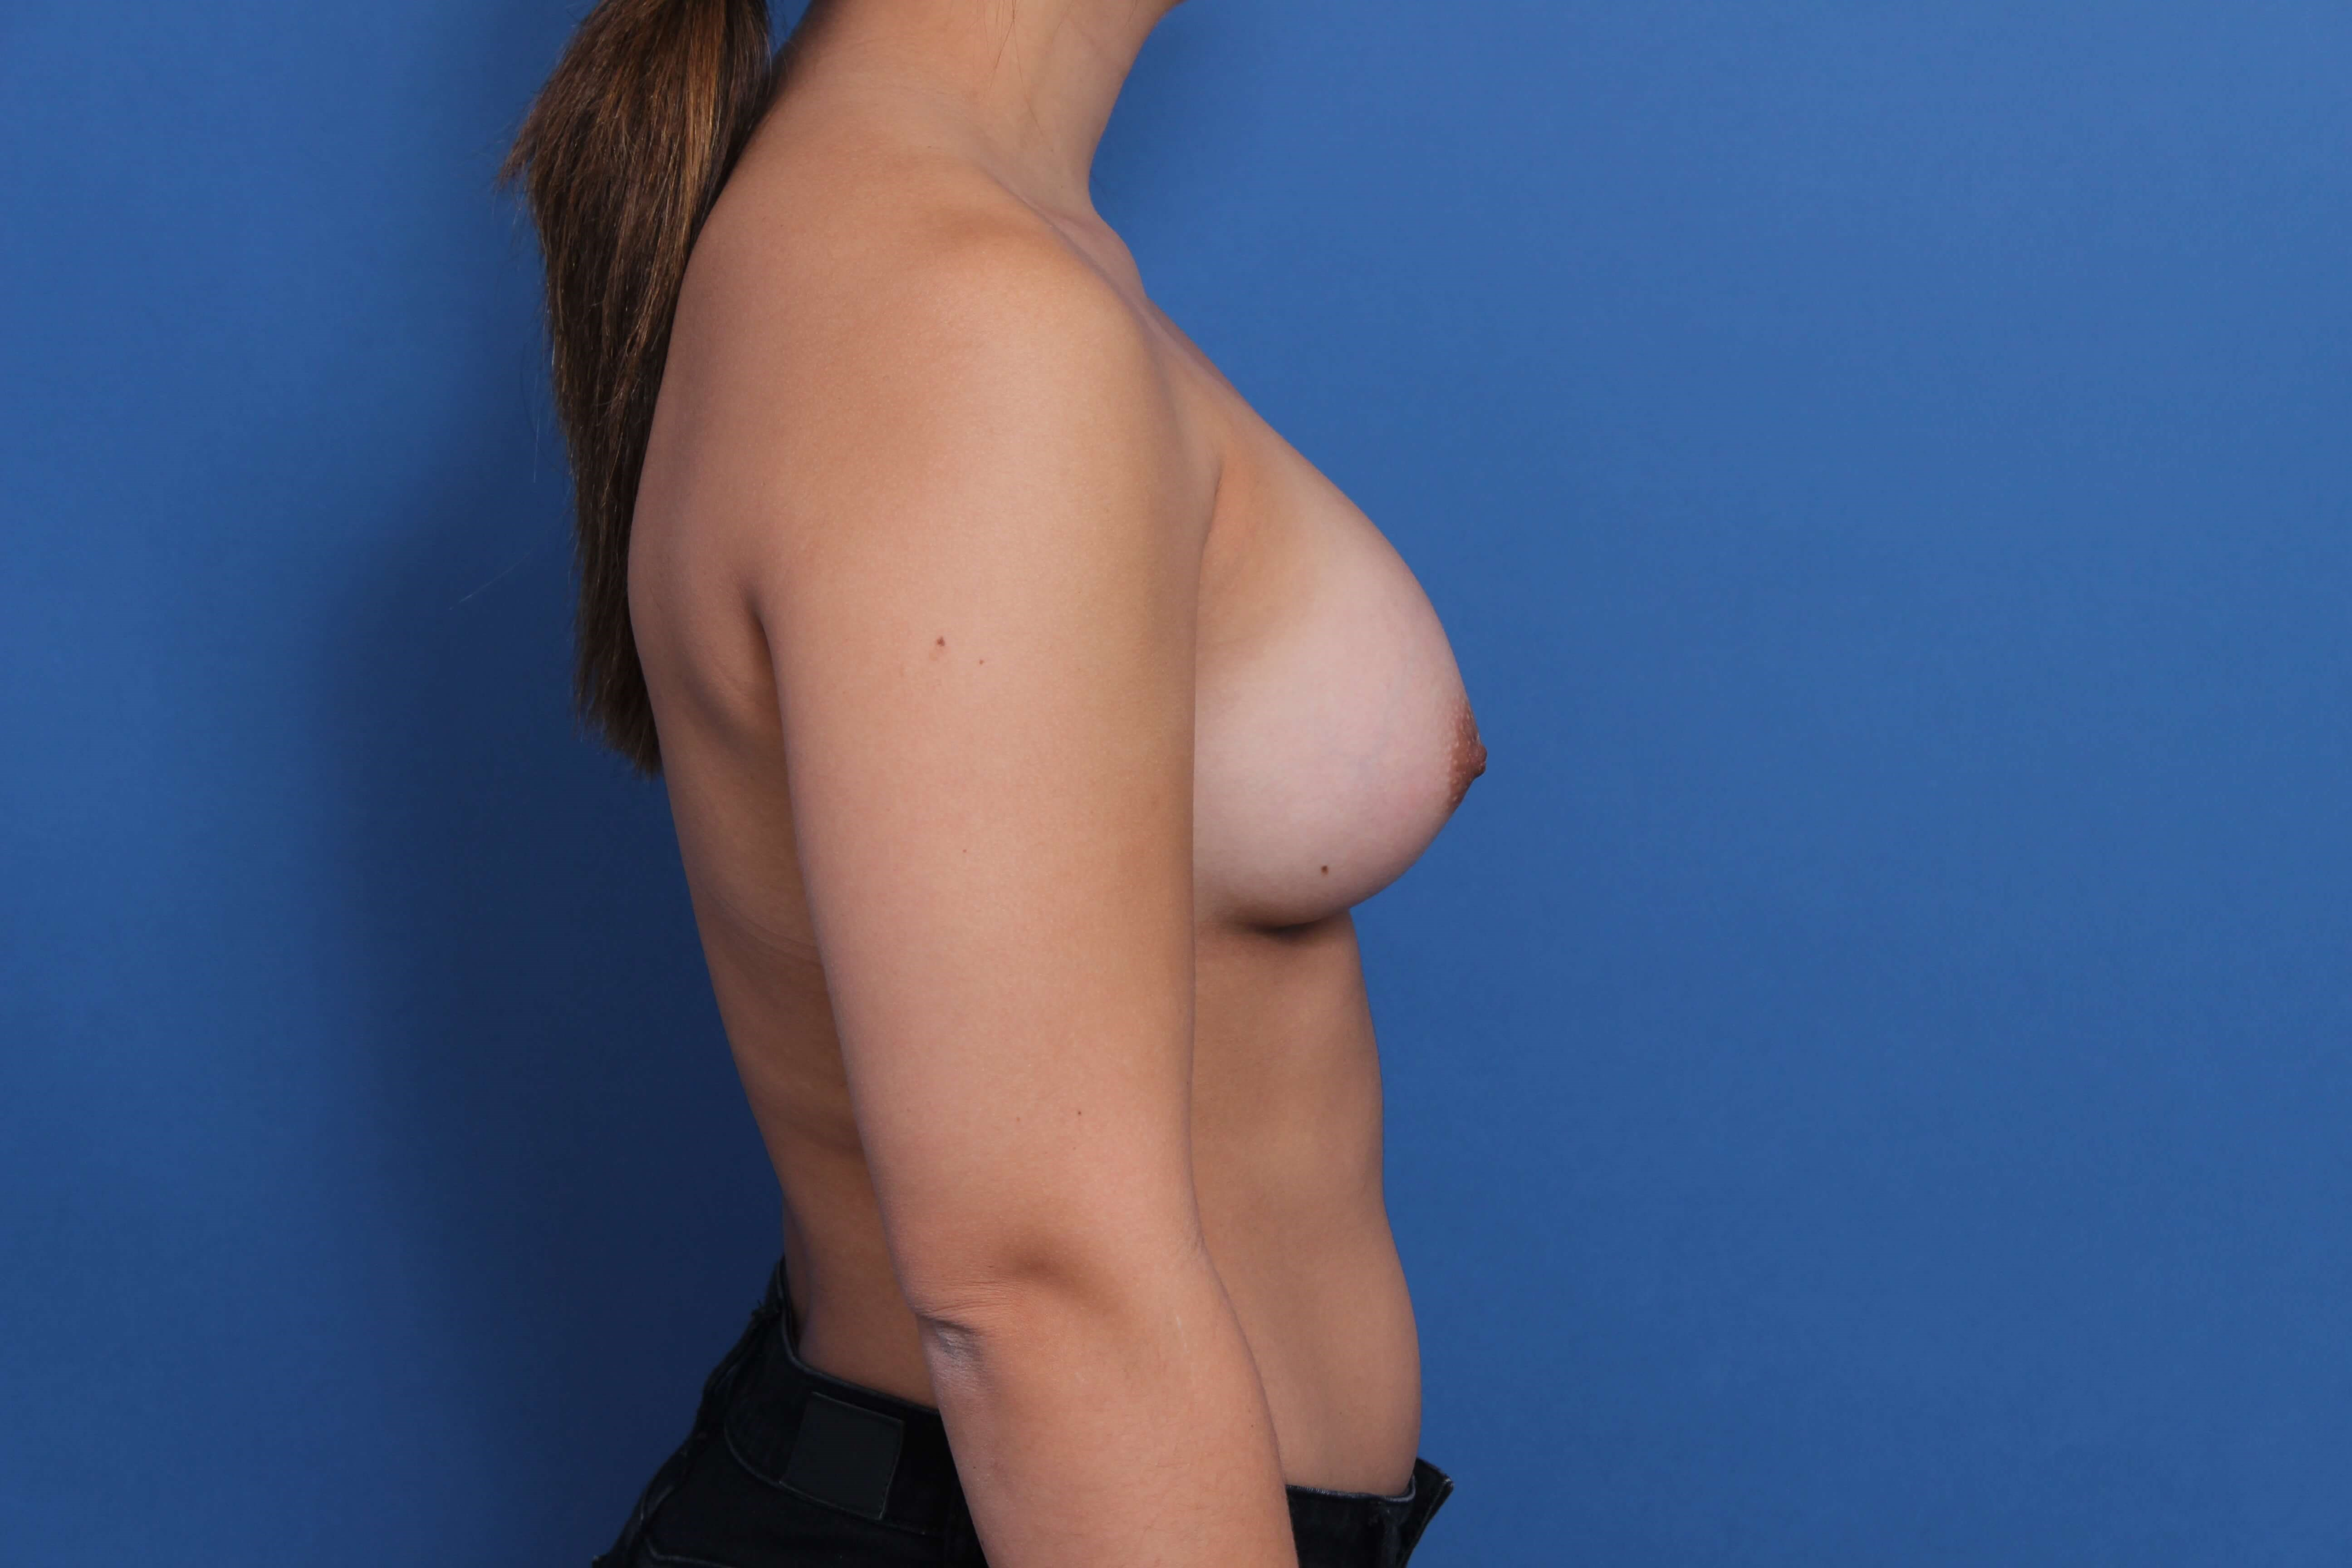 High Profile Silicone Implants After